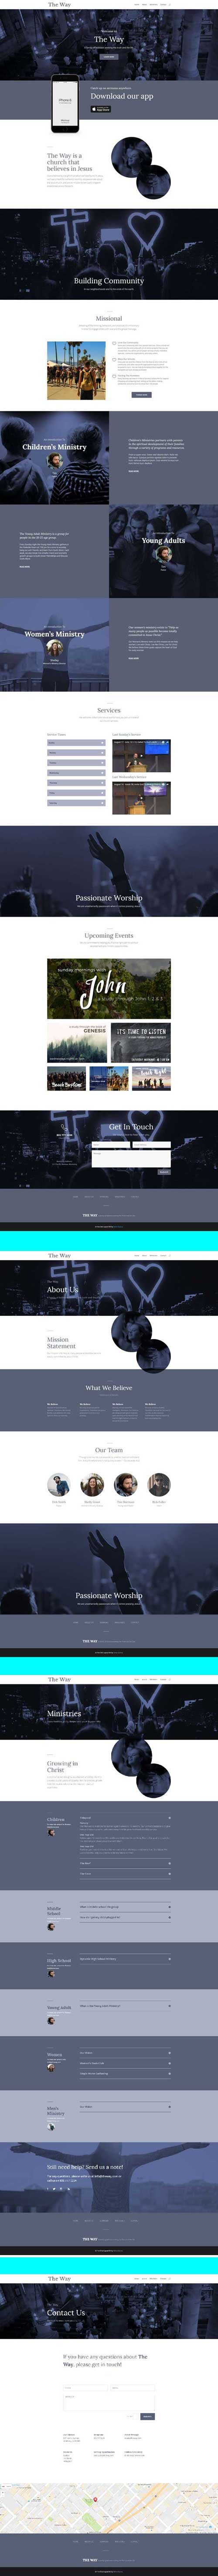 divi church layout download